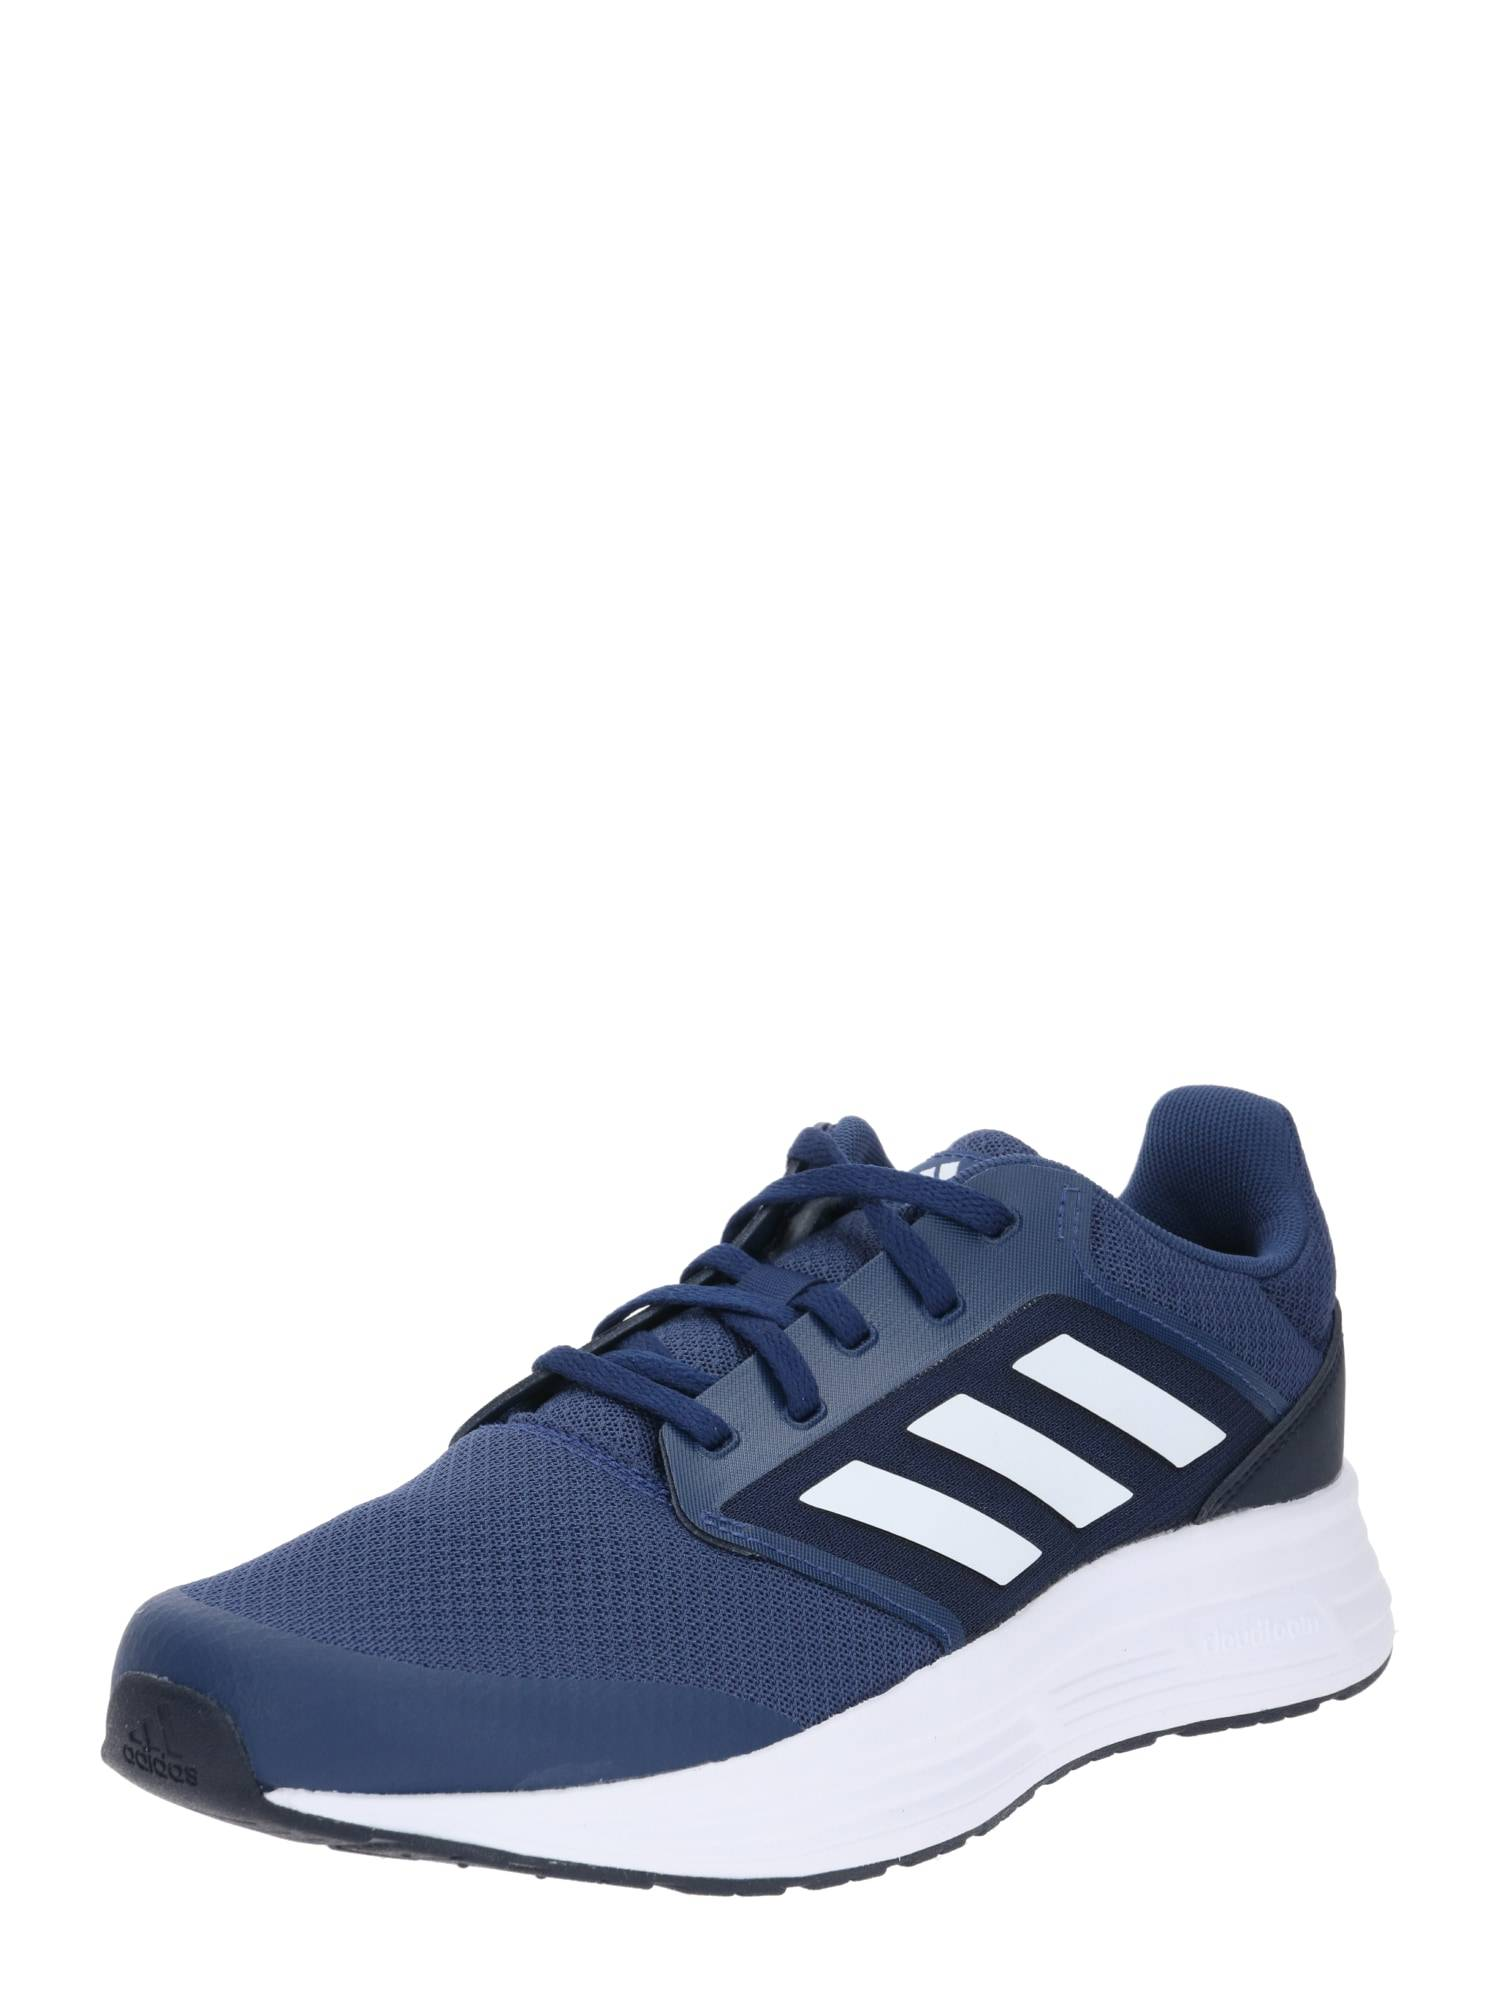 ADIDAS PERFORMANCE Chaussure de course 'Galaxy 5'  - Bleu - Taille: 42.5-43 - male